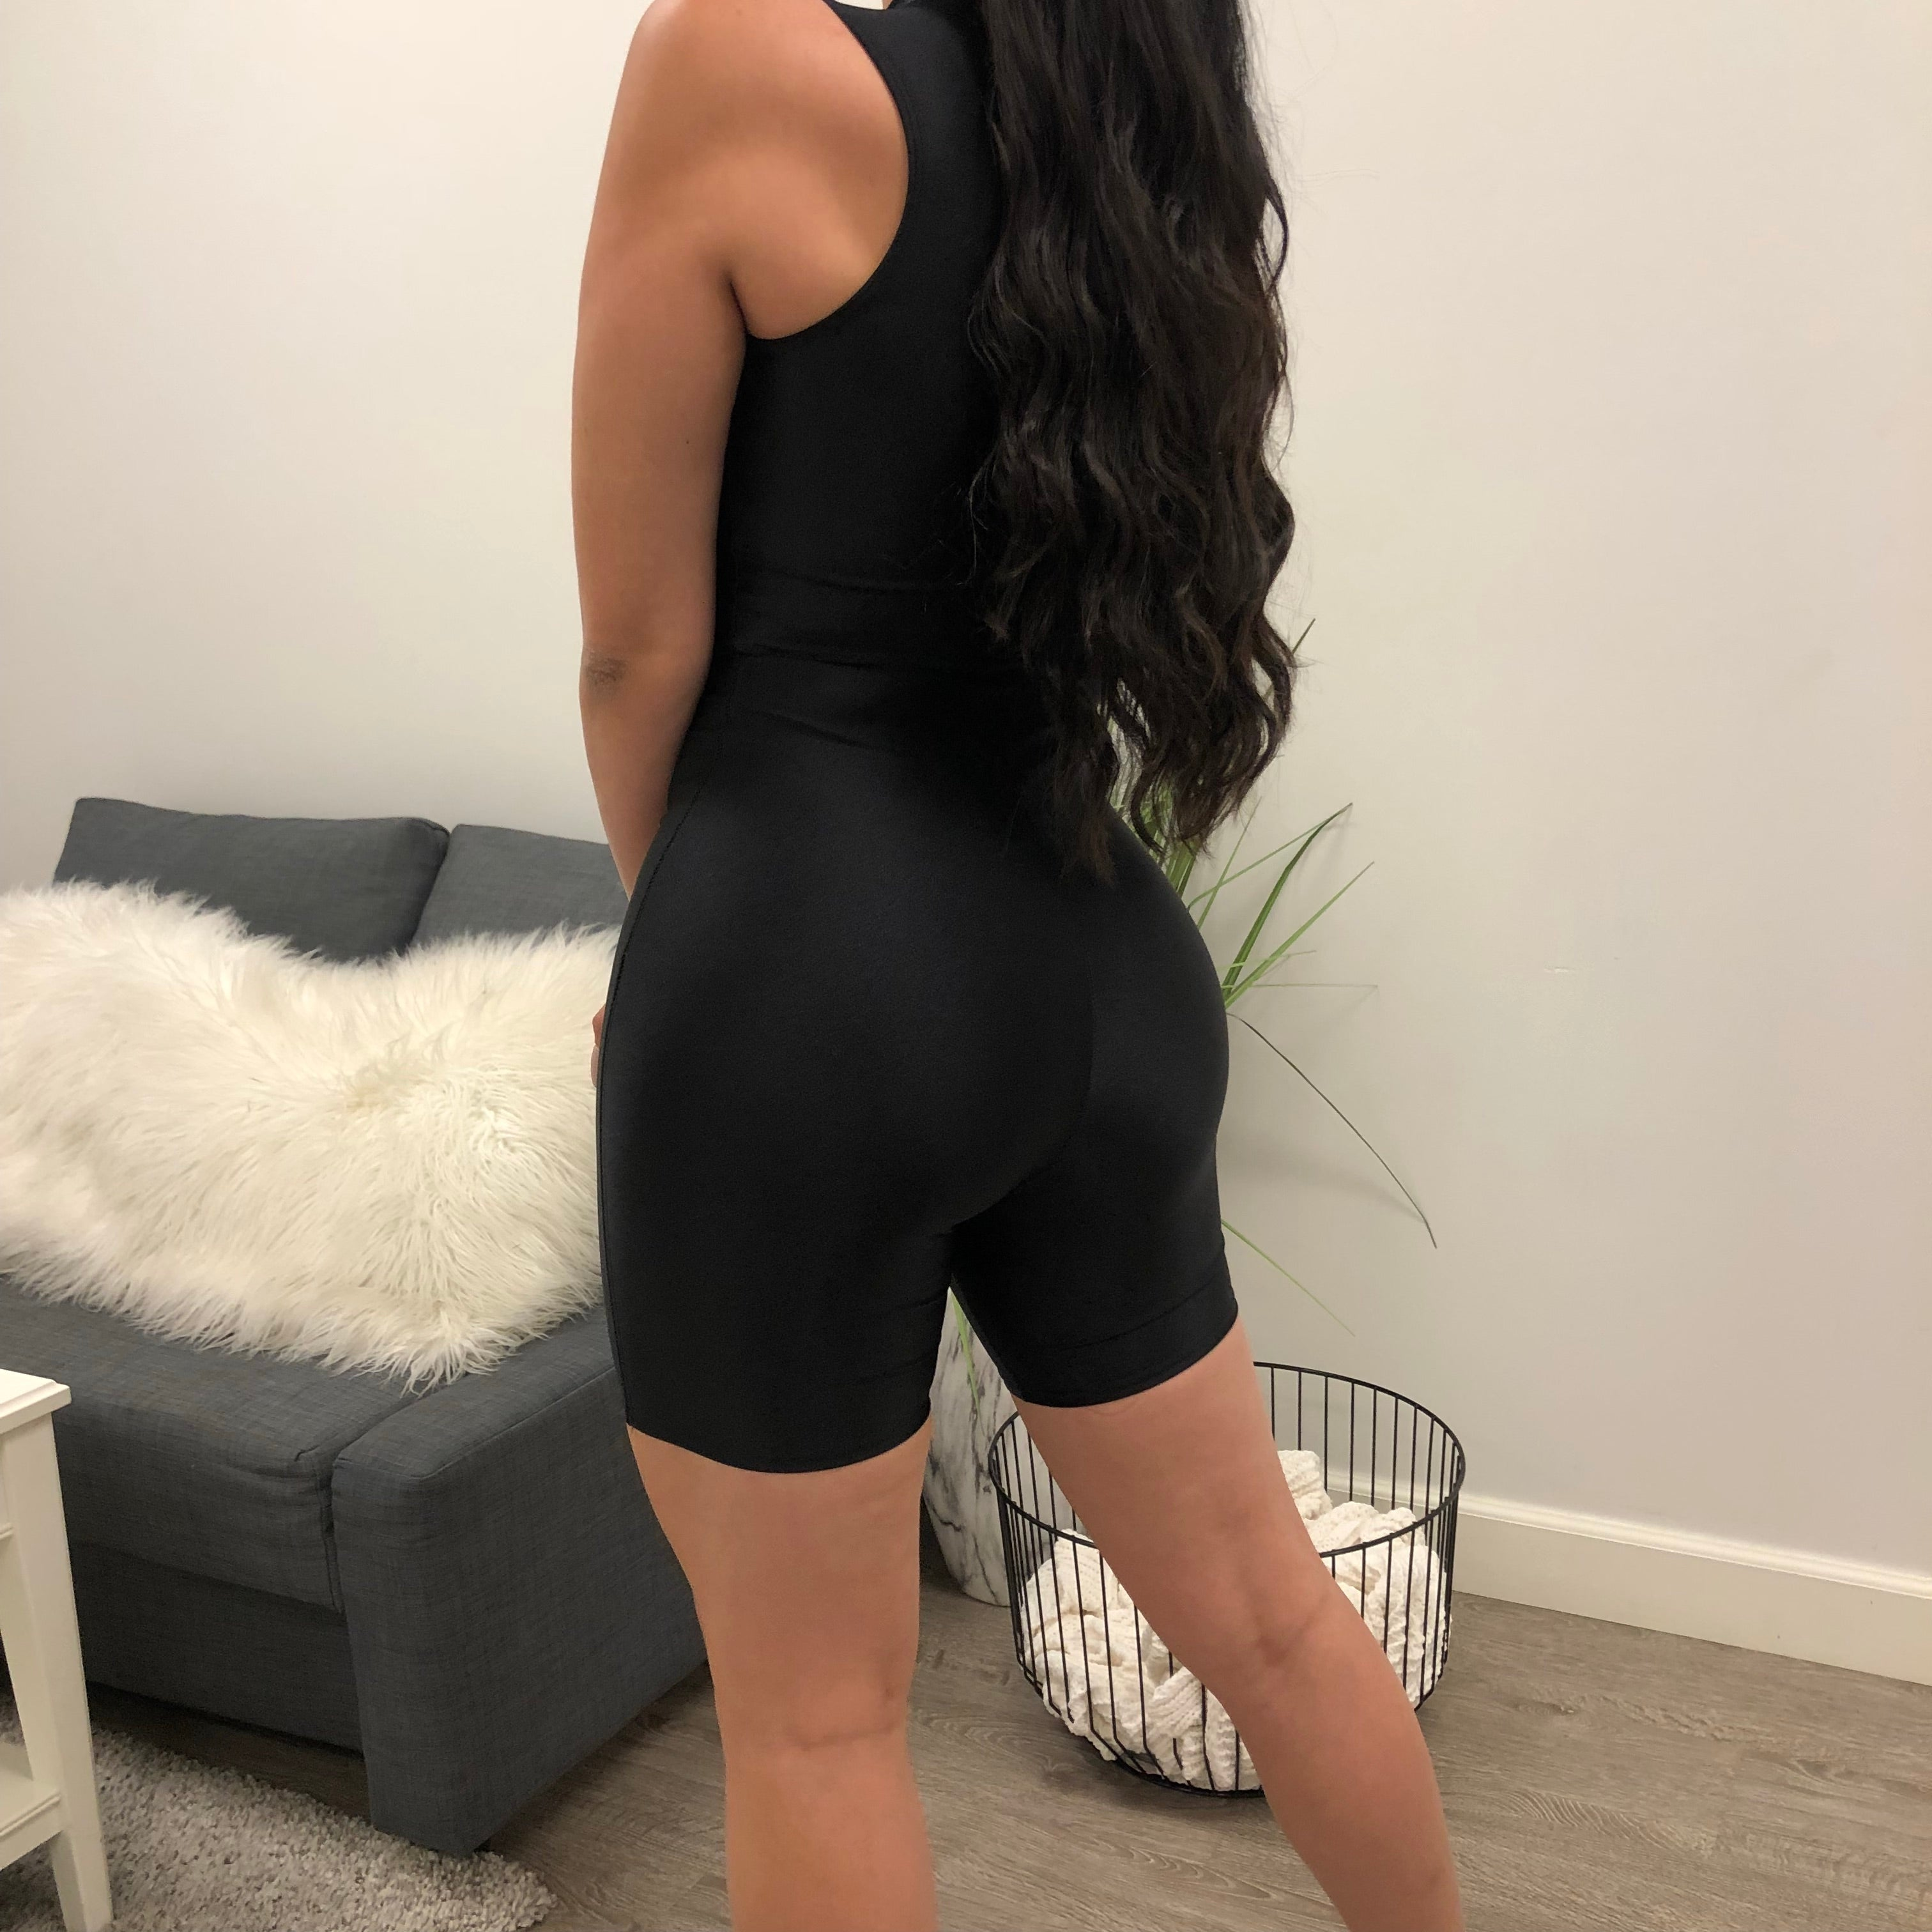 82% Nylon  18% Spandex . Zipper on the middle. Black Jumpsuit is stretchy material. Midi legnth. Very comfortable.